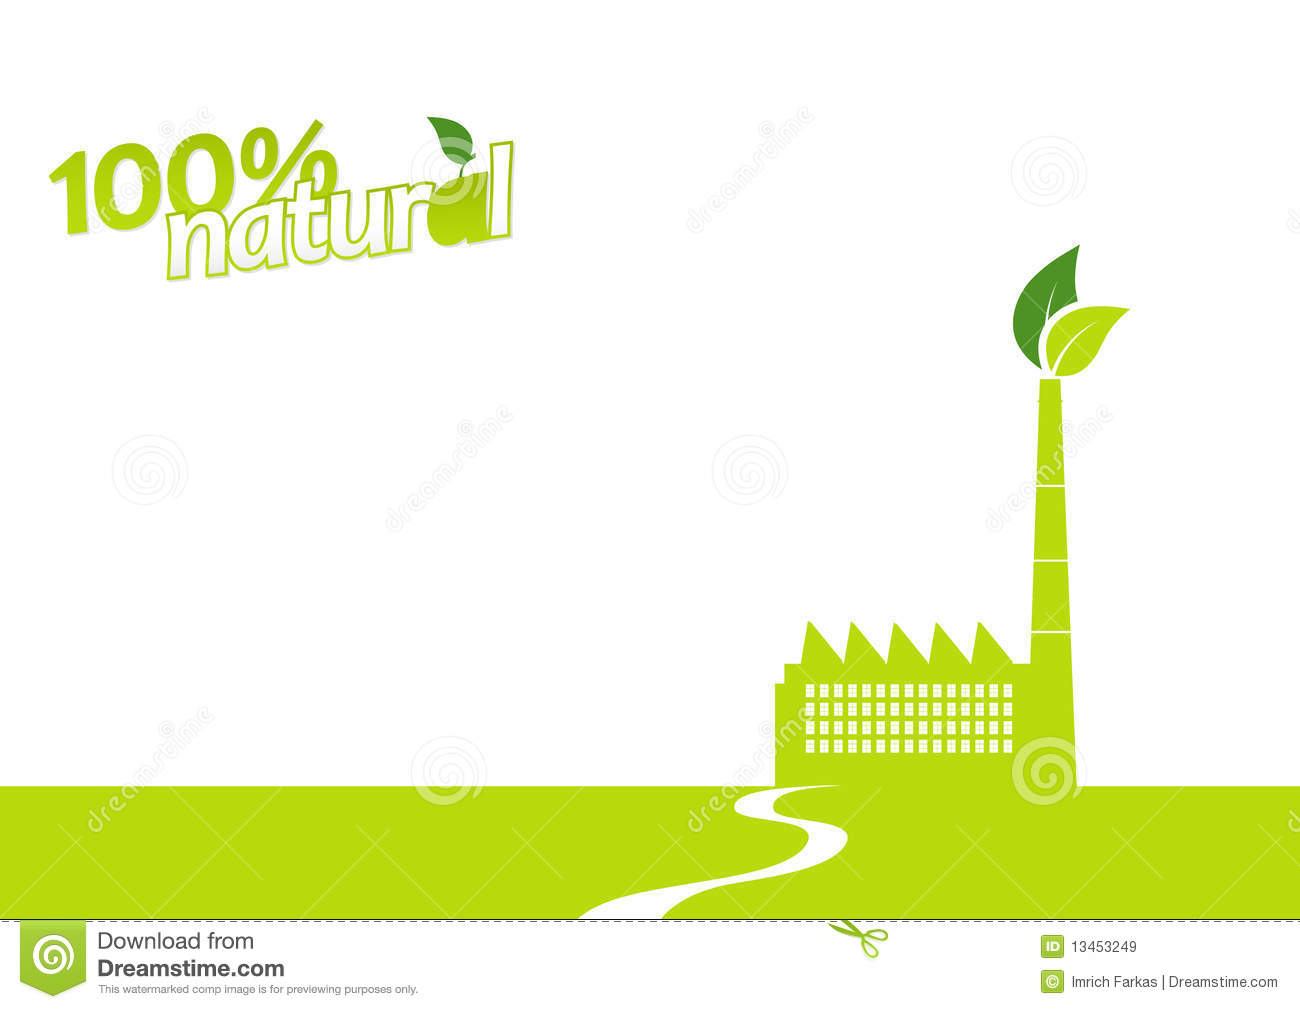 Water Pollution Stock Photos Royalty Free Business Images Biogas Diagram Image 36146824